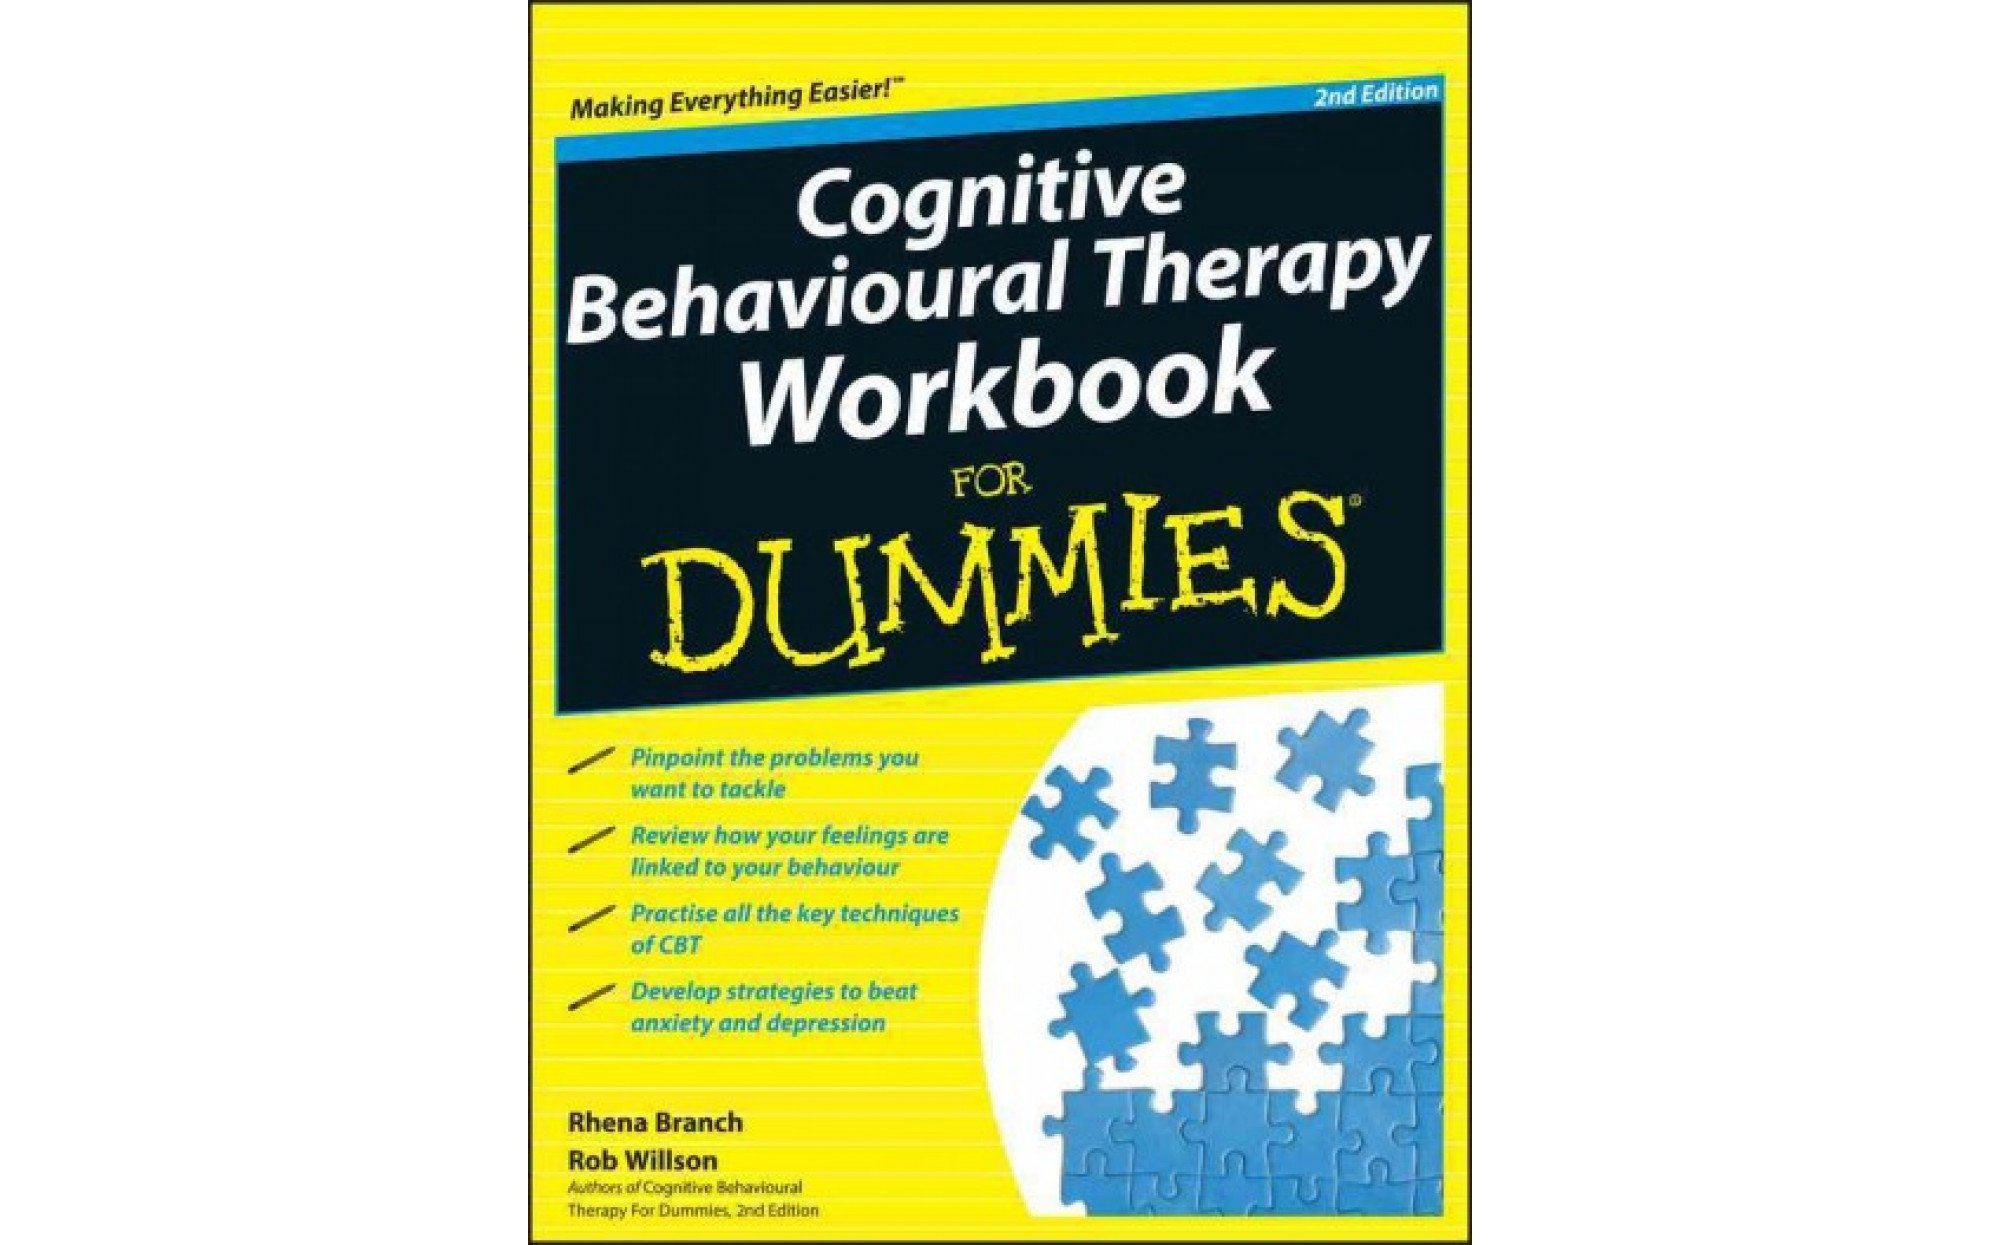 Cognitive Behavioural Therapy Workbook For Dummies Books